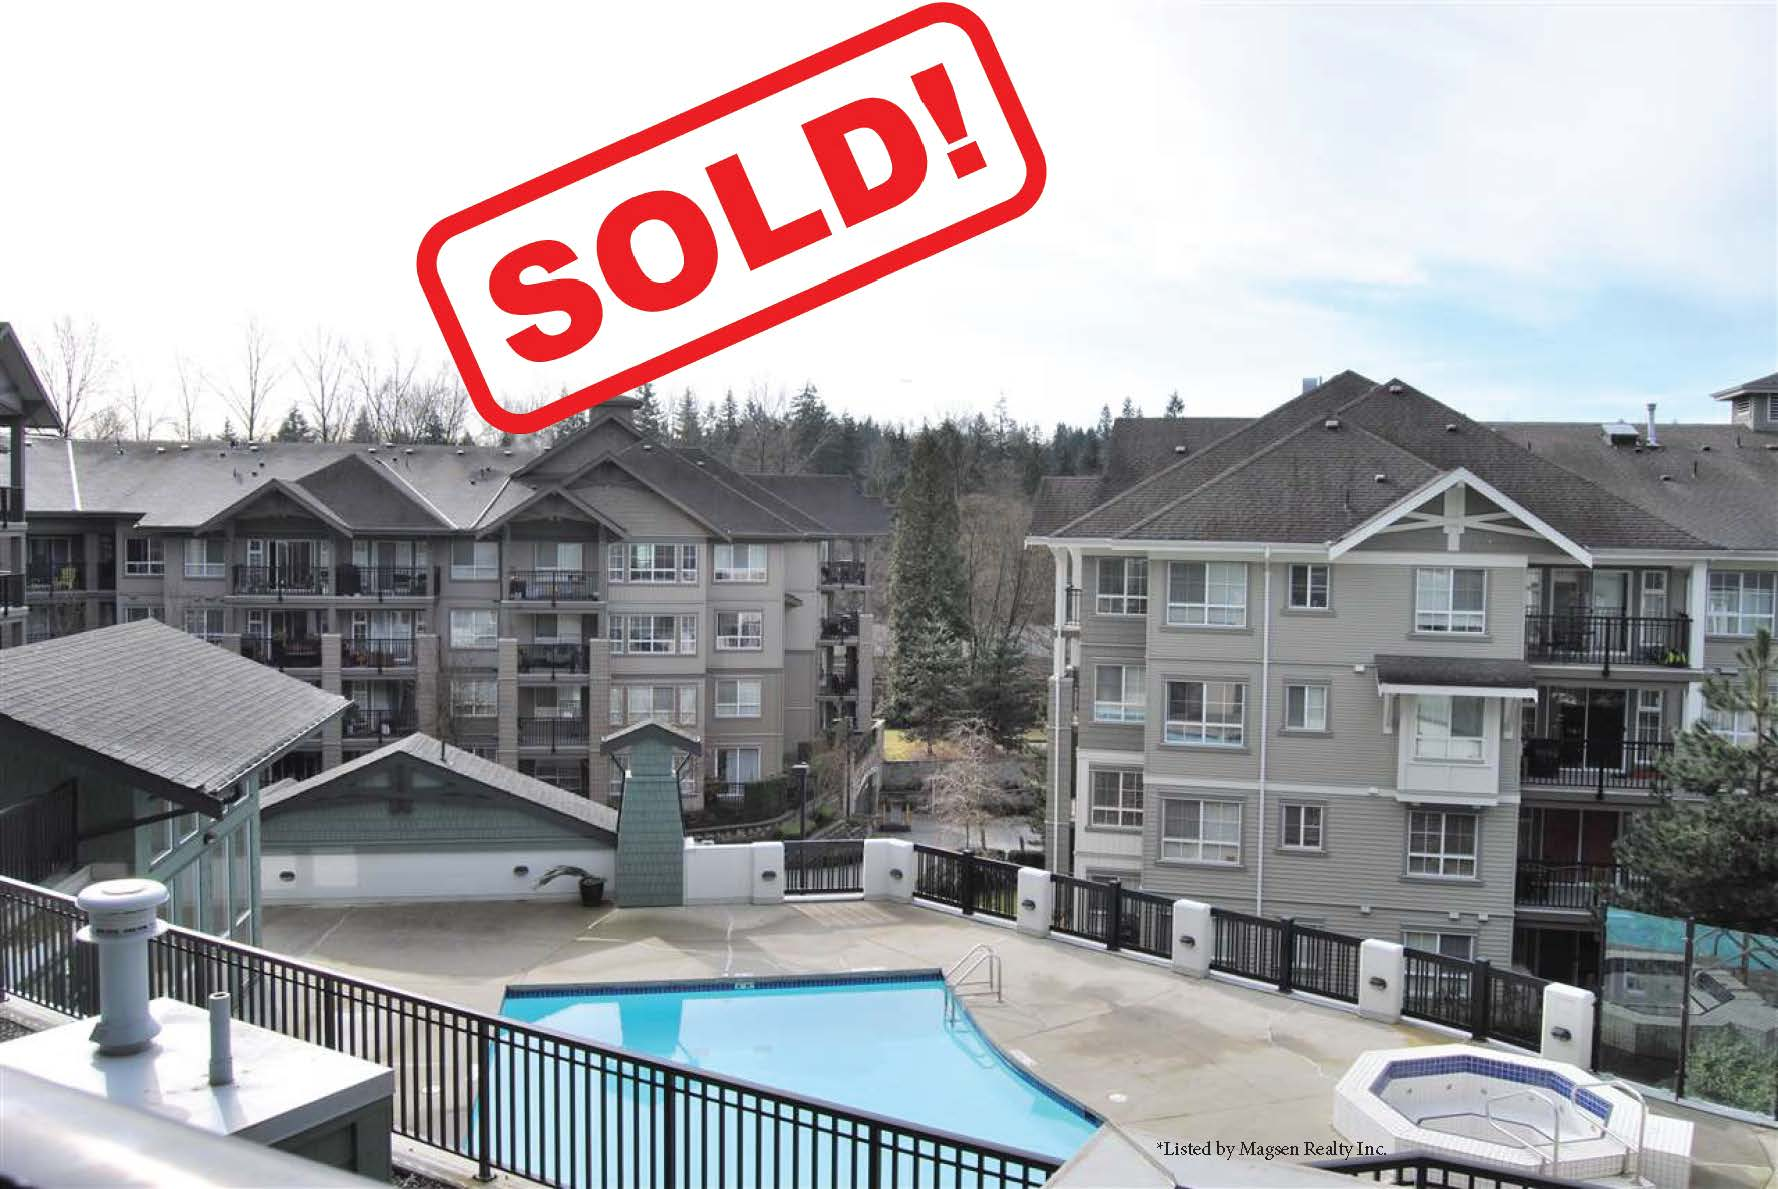 213-9098 Halston Court   sold for: $390,000  1 Bed | 1 Bath | 763 SF